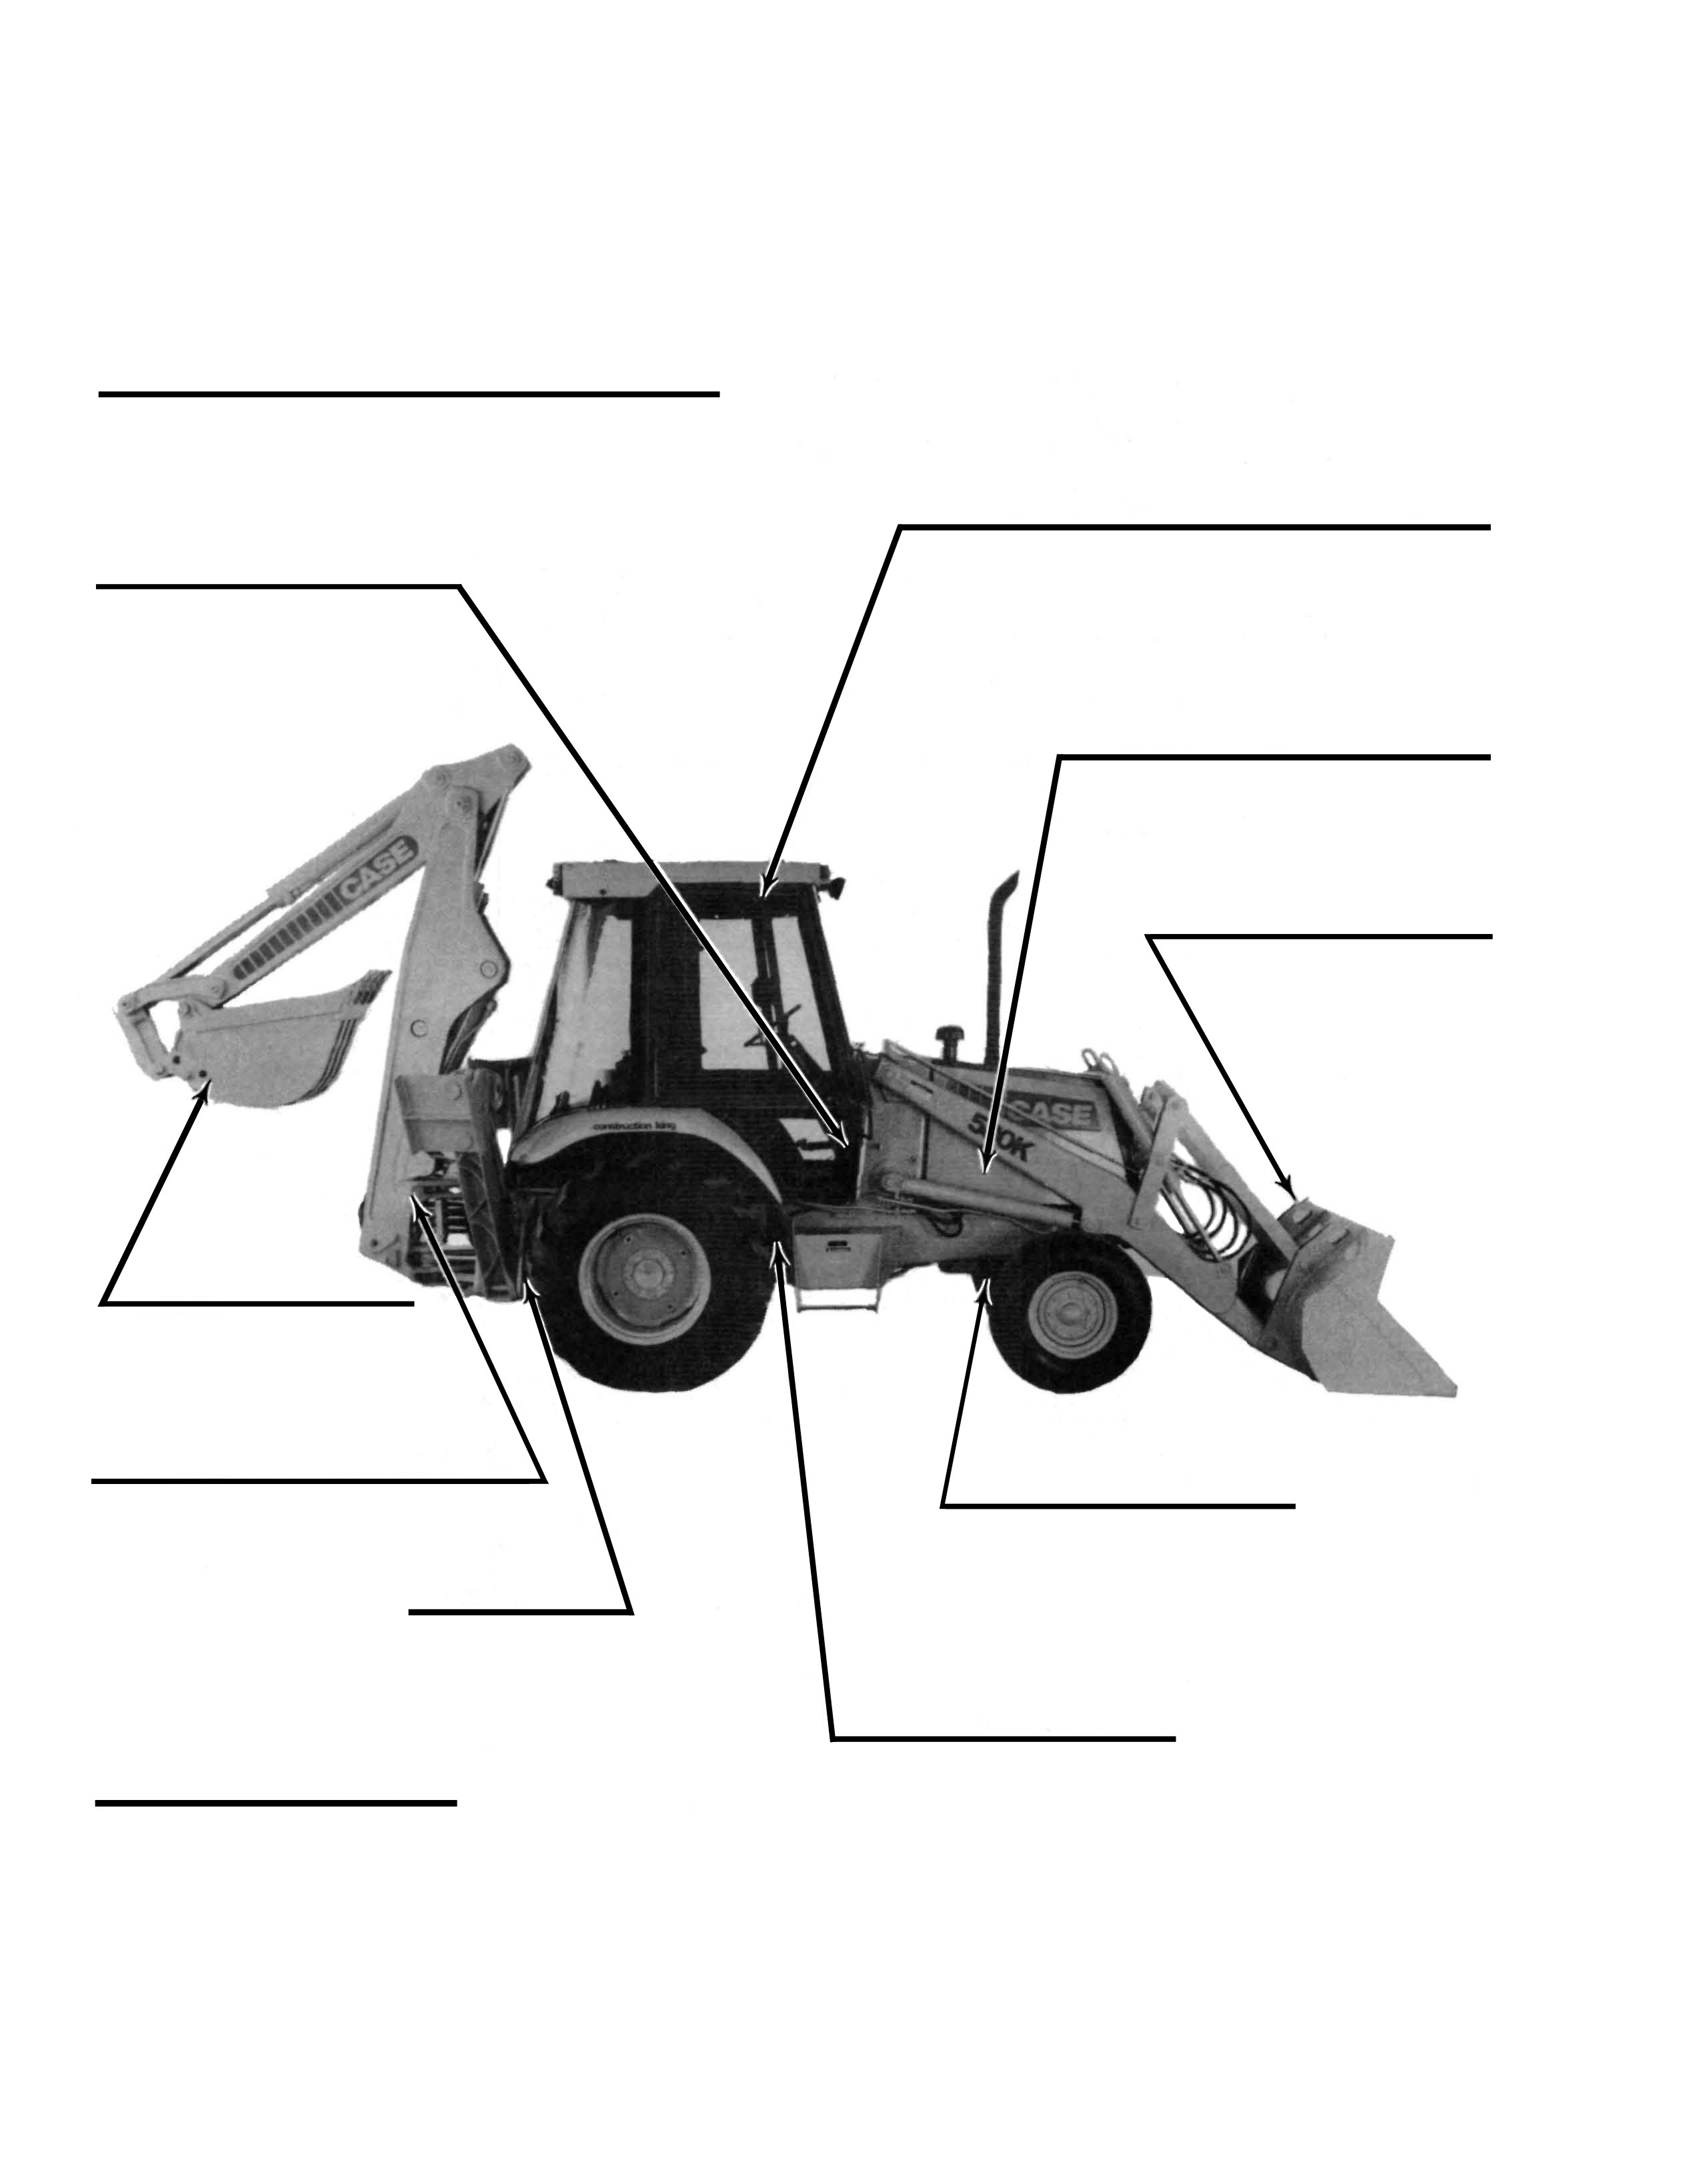 Case 580K Backhoe Serial Number Locations (580E)